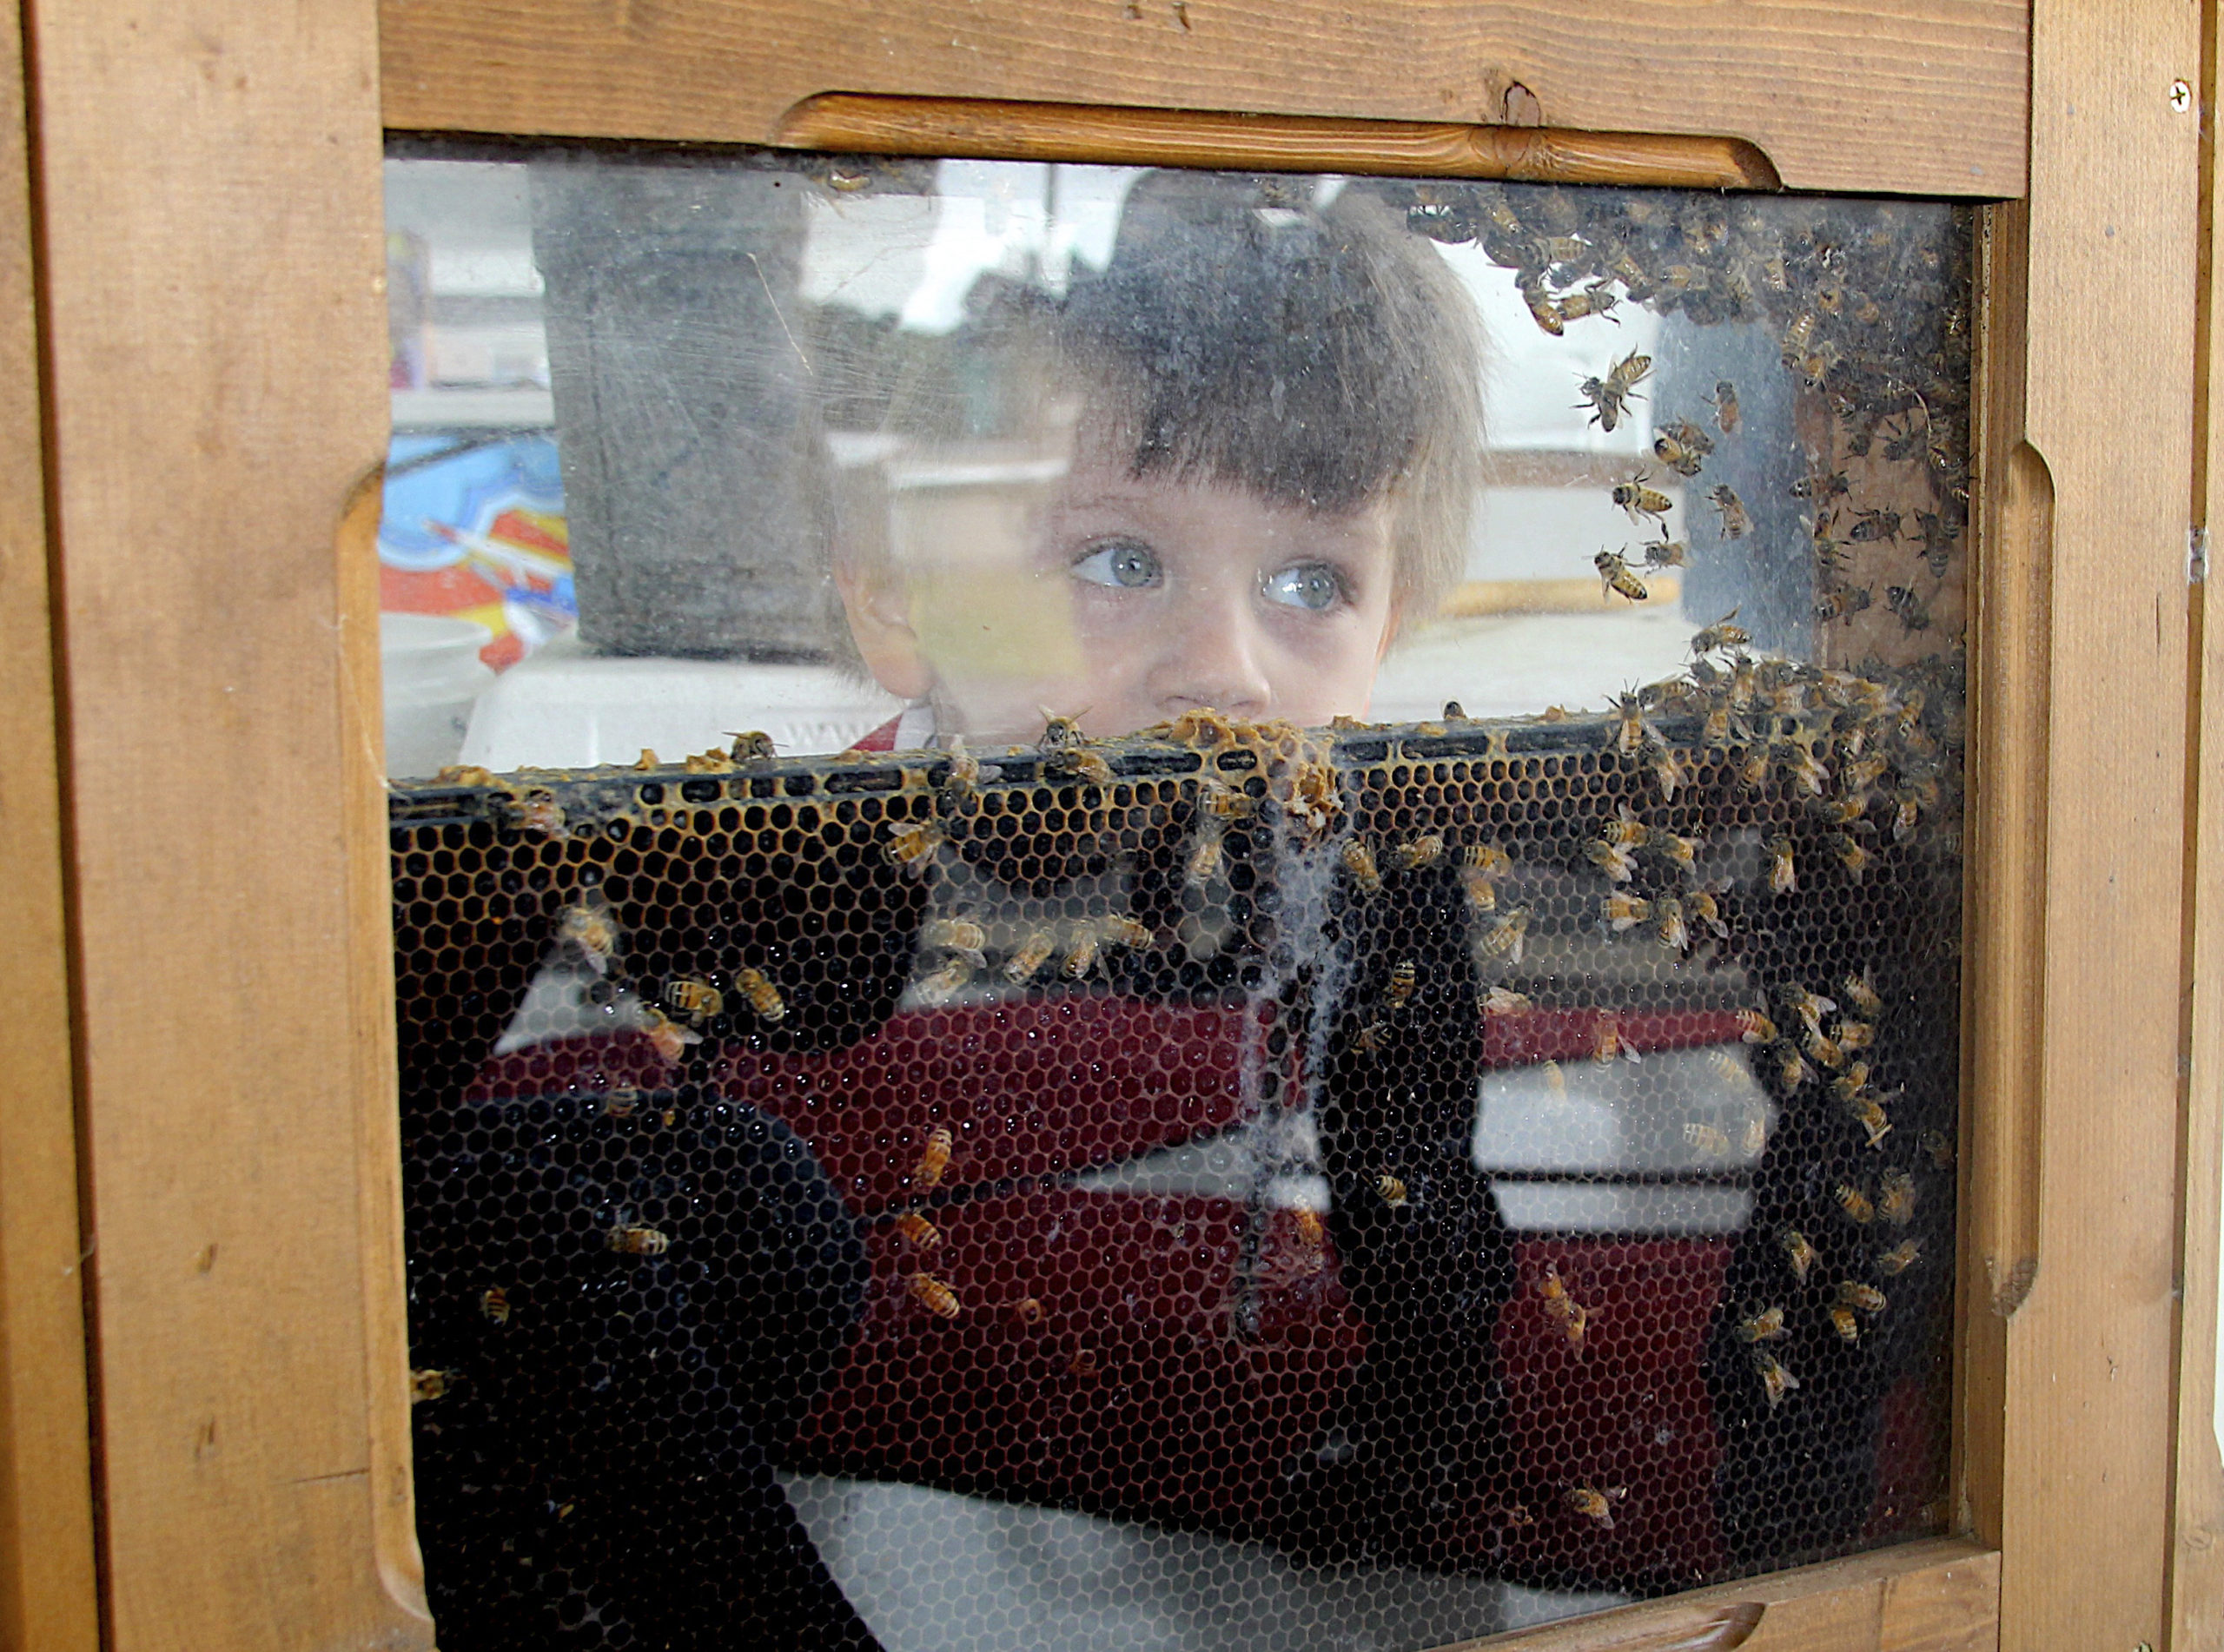 Camden Lipp watches honey bees in action at the Honey Harvest Fest hosted by Sound Aircraft Services at the East Hampton Airport.  KYRIL BROMLEY